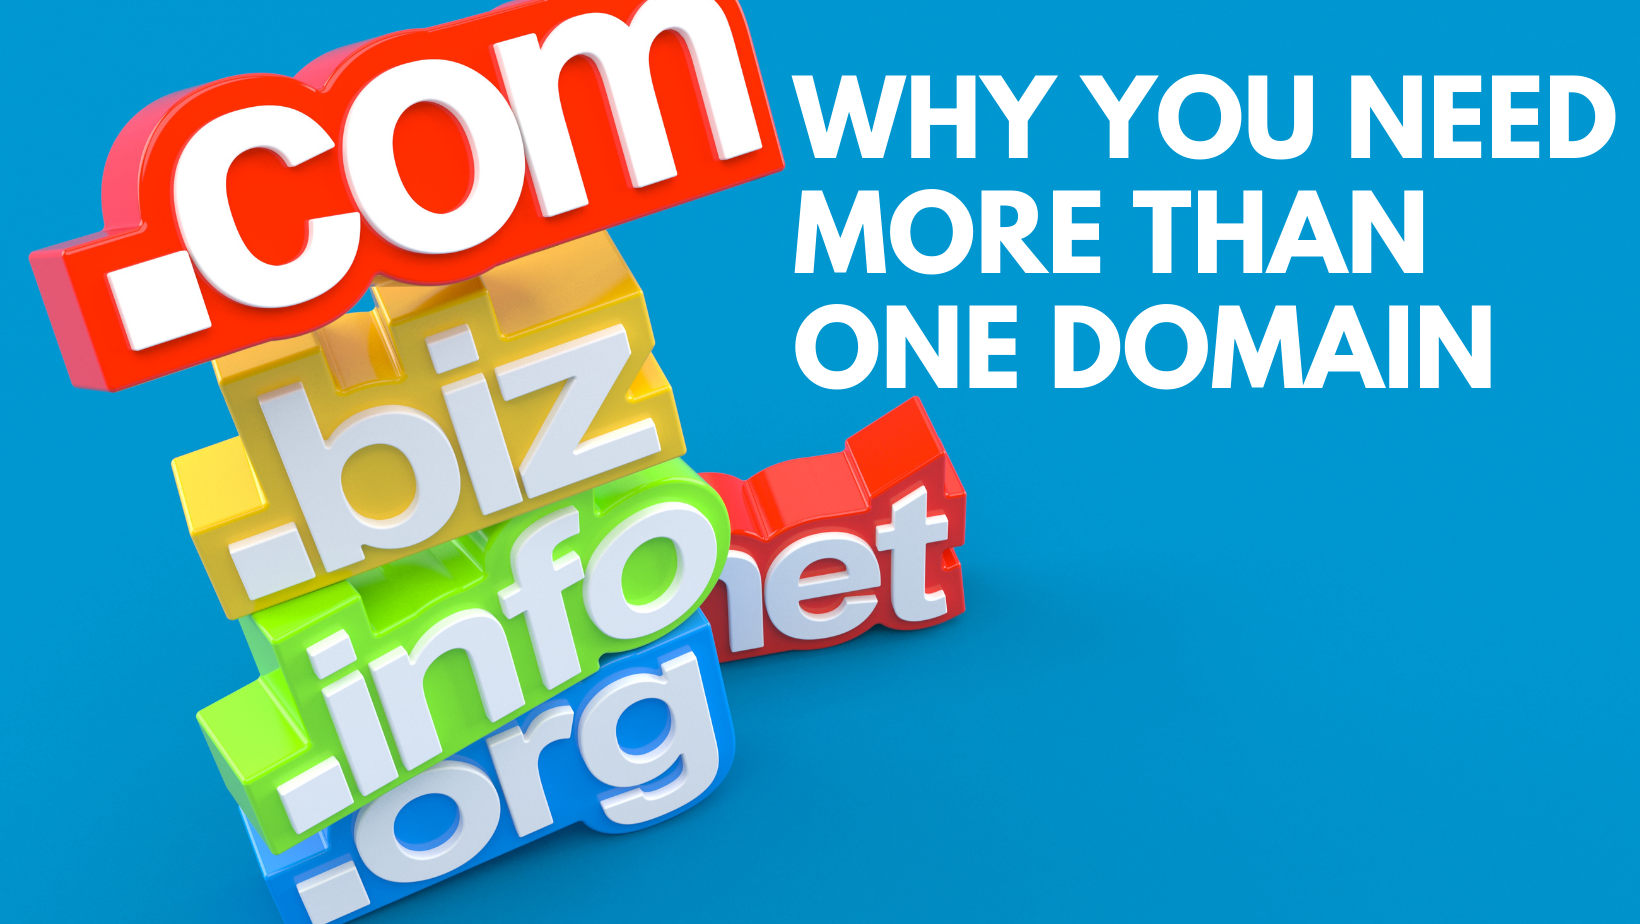 Why you need more than one domain Reasons and Tips